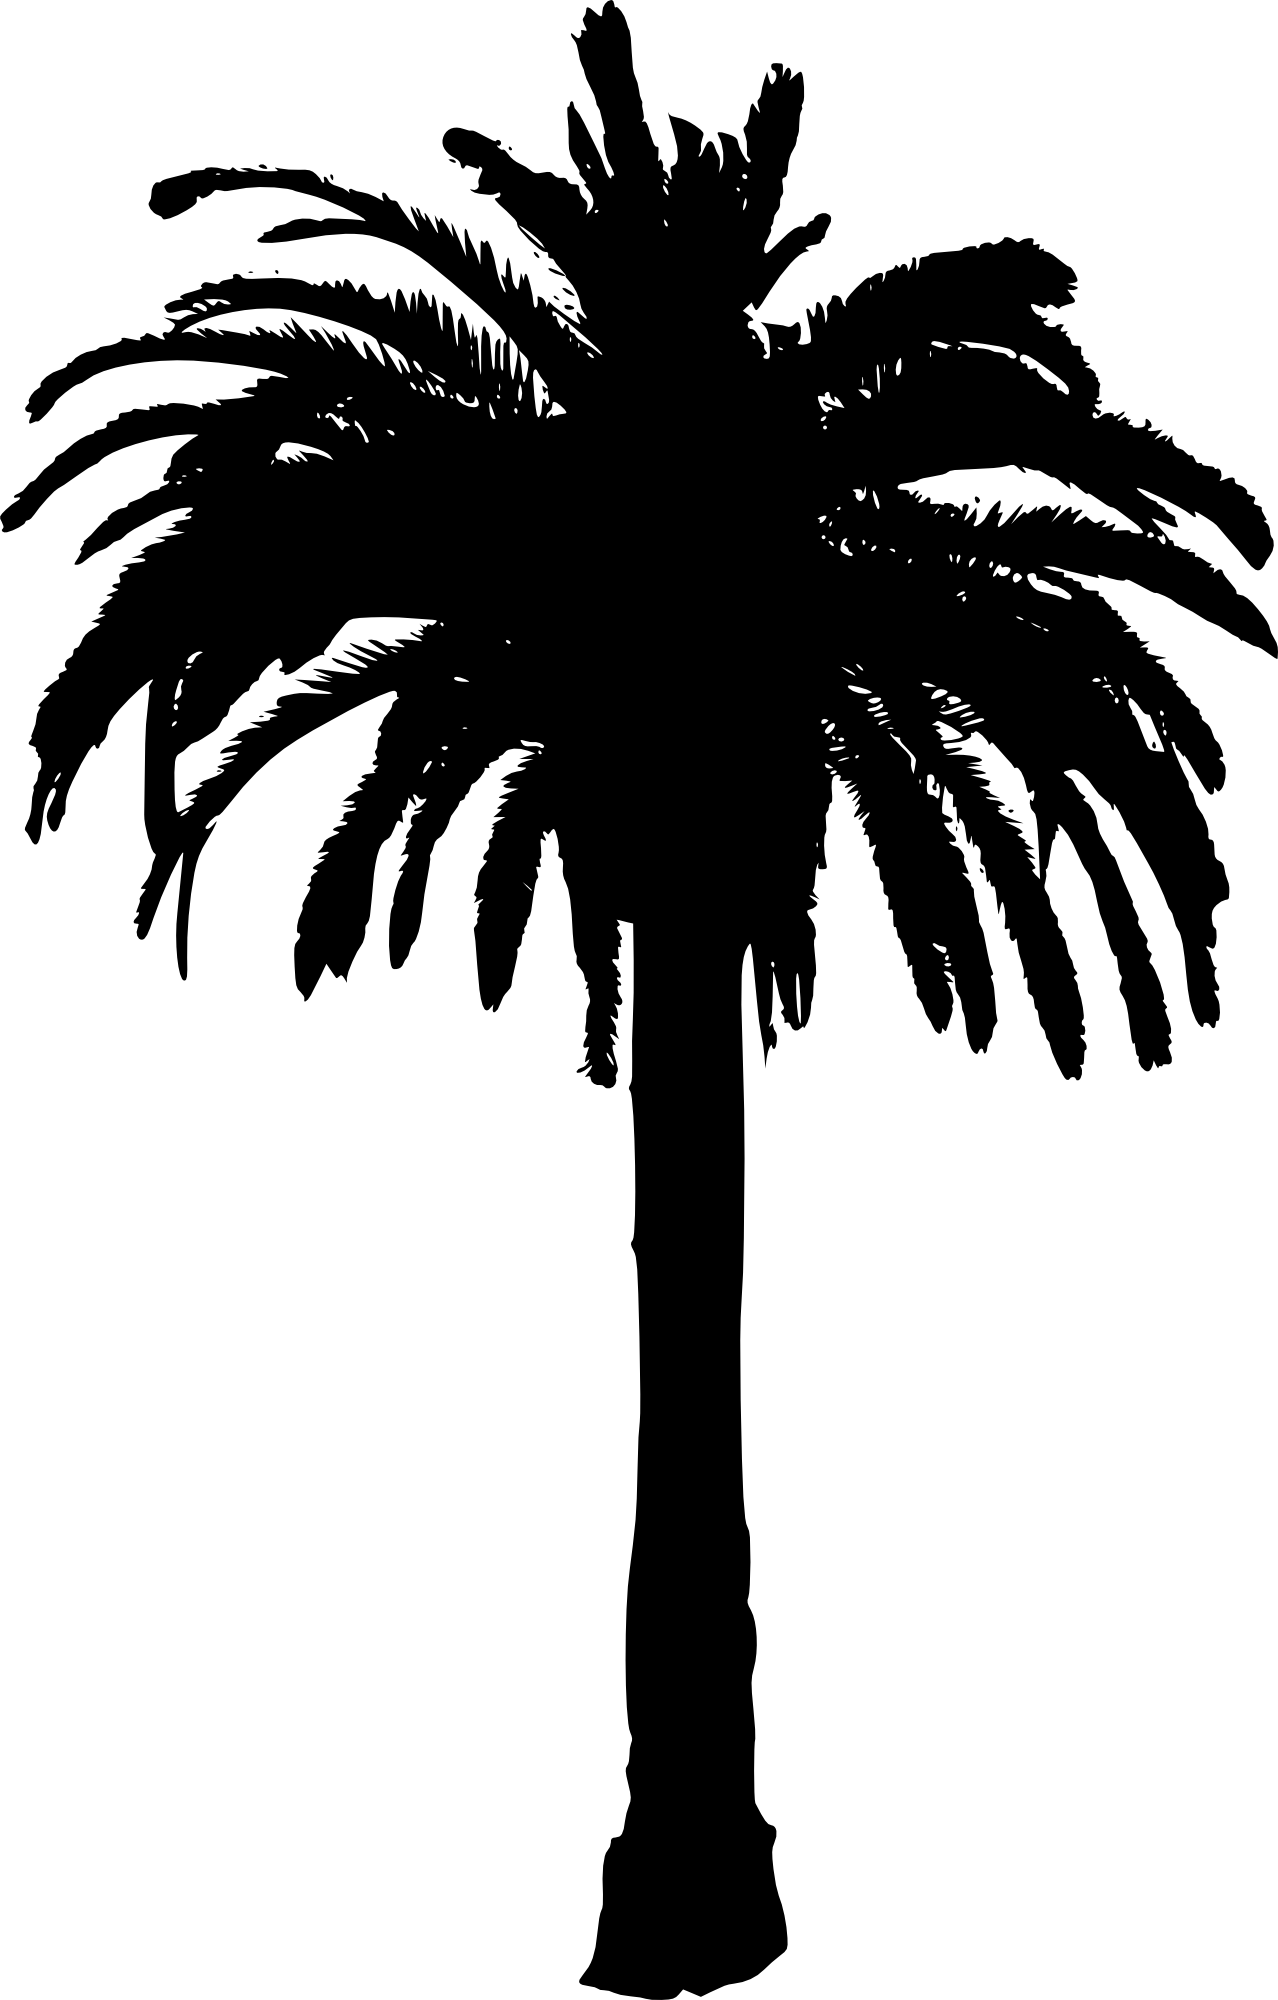 Palm tree silhouette png. Pictures of trees at